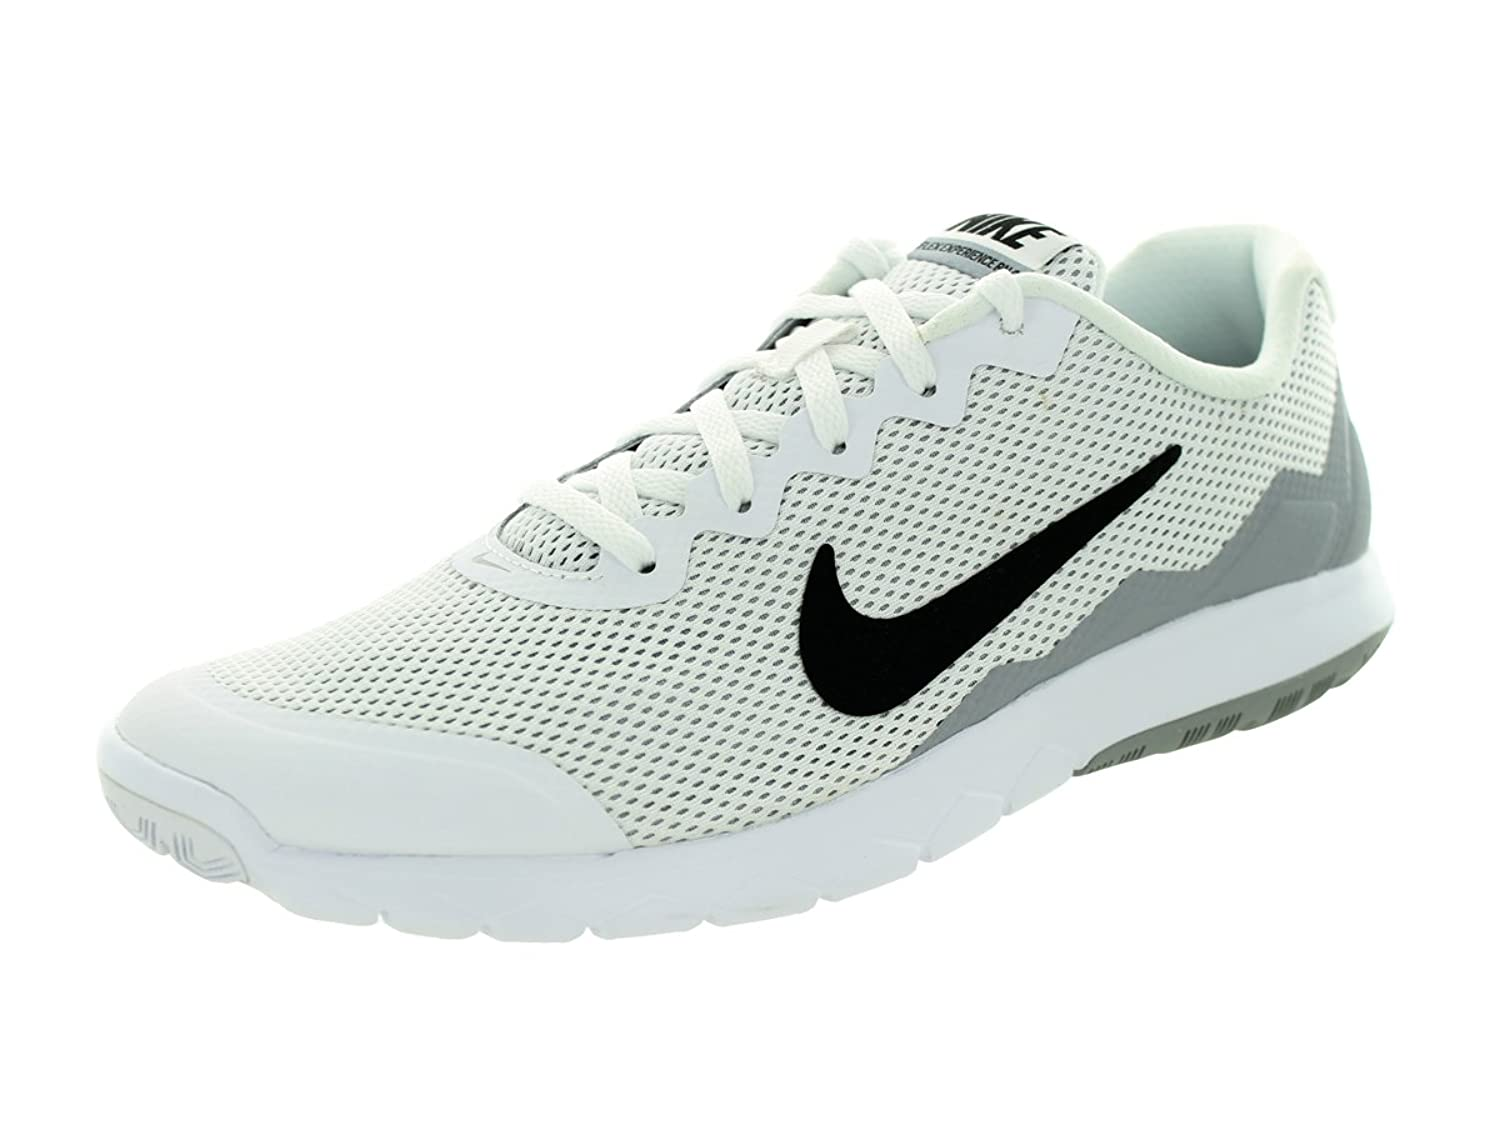 Nike Men\u0026#39;s Flex Experience Rn 4 Running Shoes: Buy Online at Low Prices in India - Amazon.in